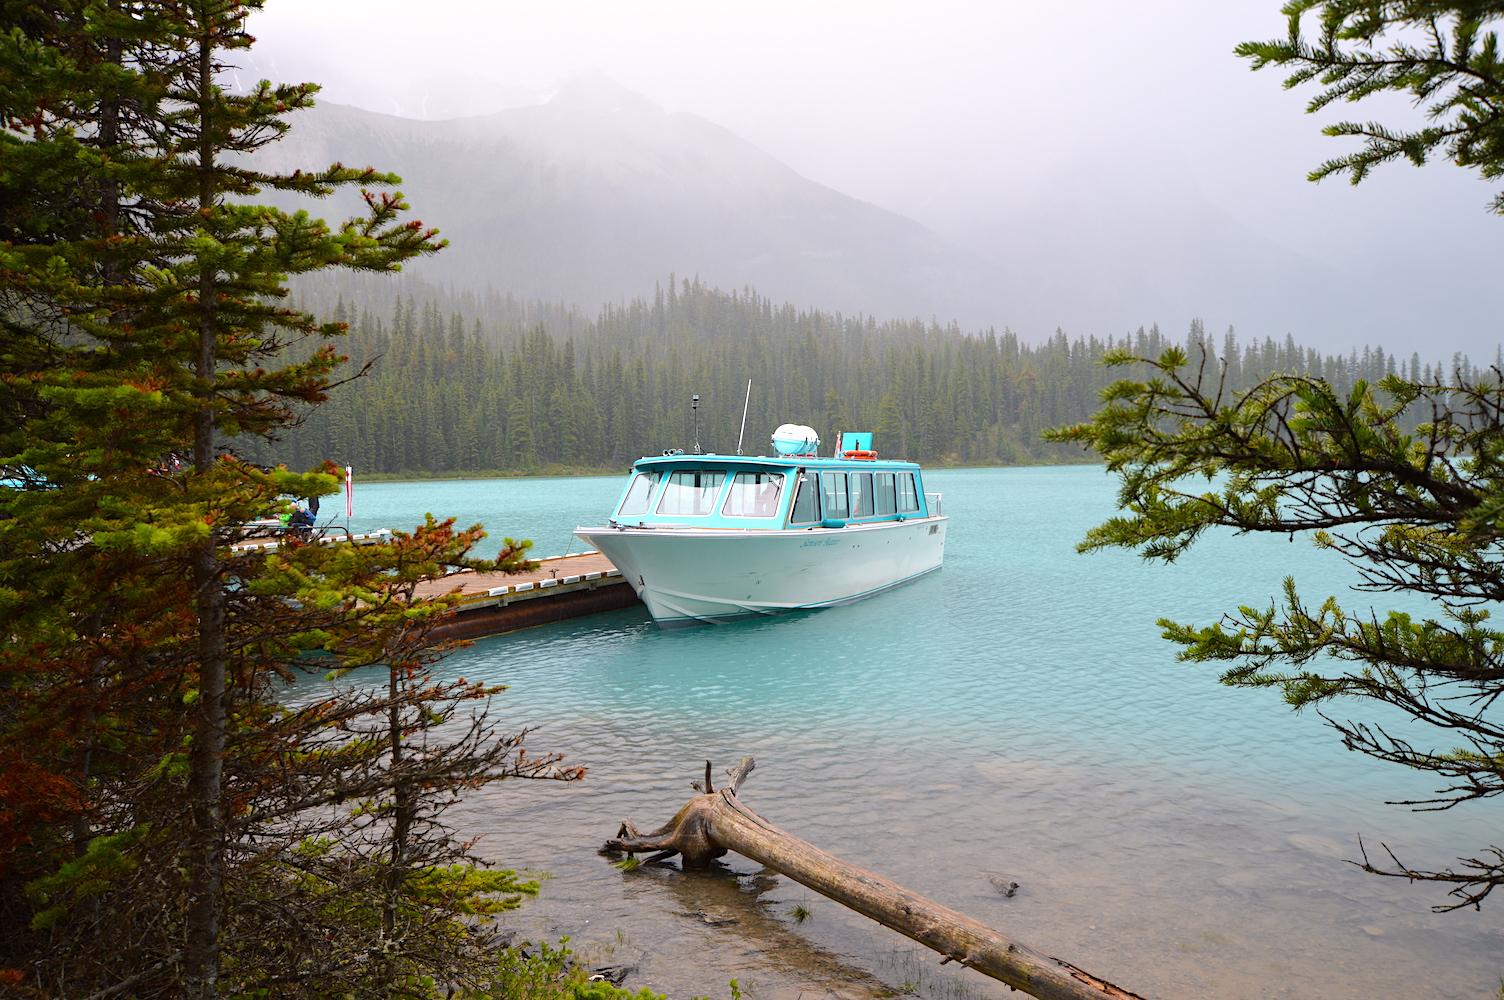 MALIGNE VALLEY WILDLIFE & WATERFALLS TOUR WITH CRUISE